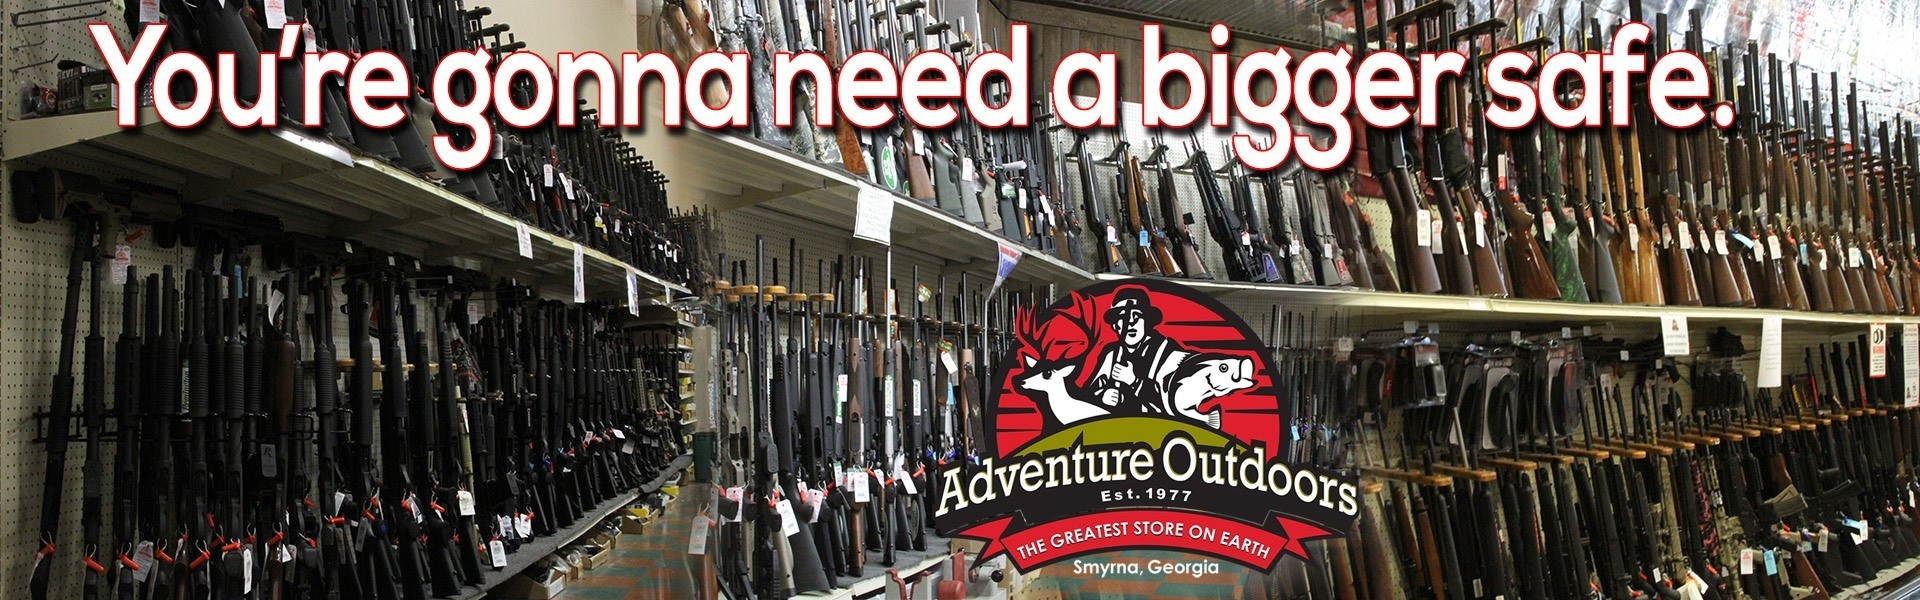 Adventure Outdoors | The World's Largest Gun Store